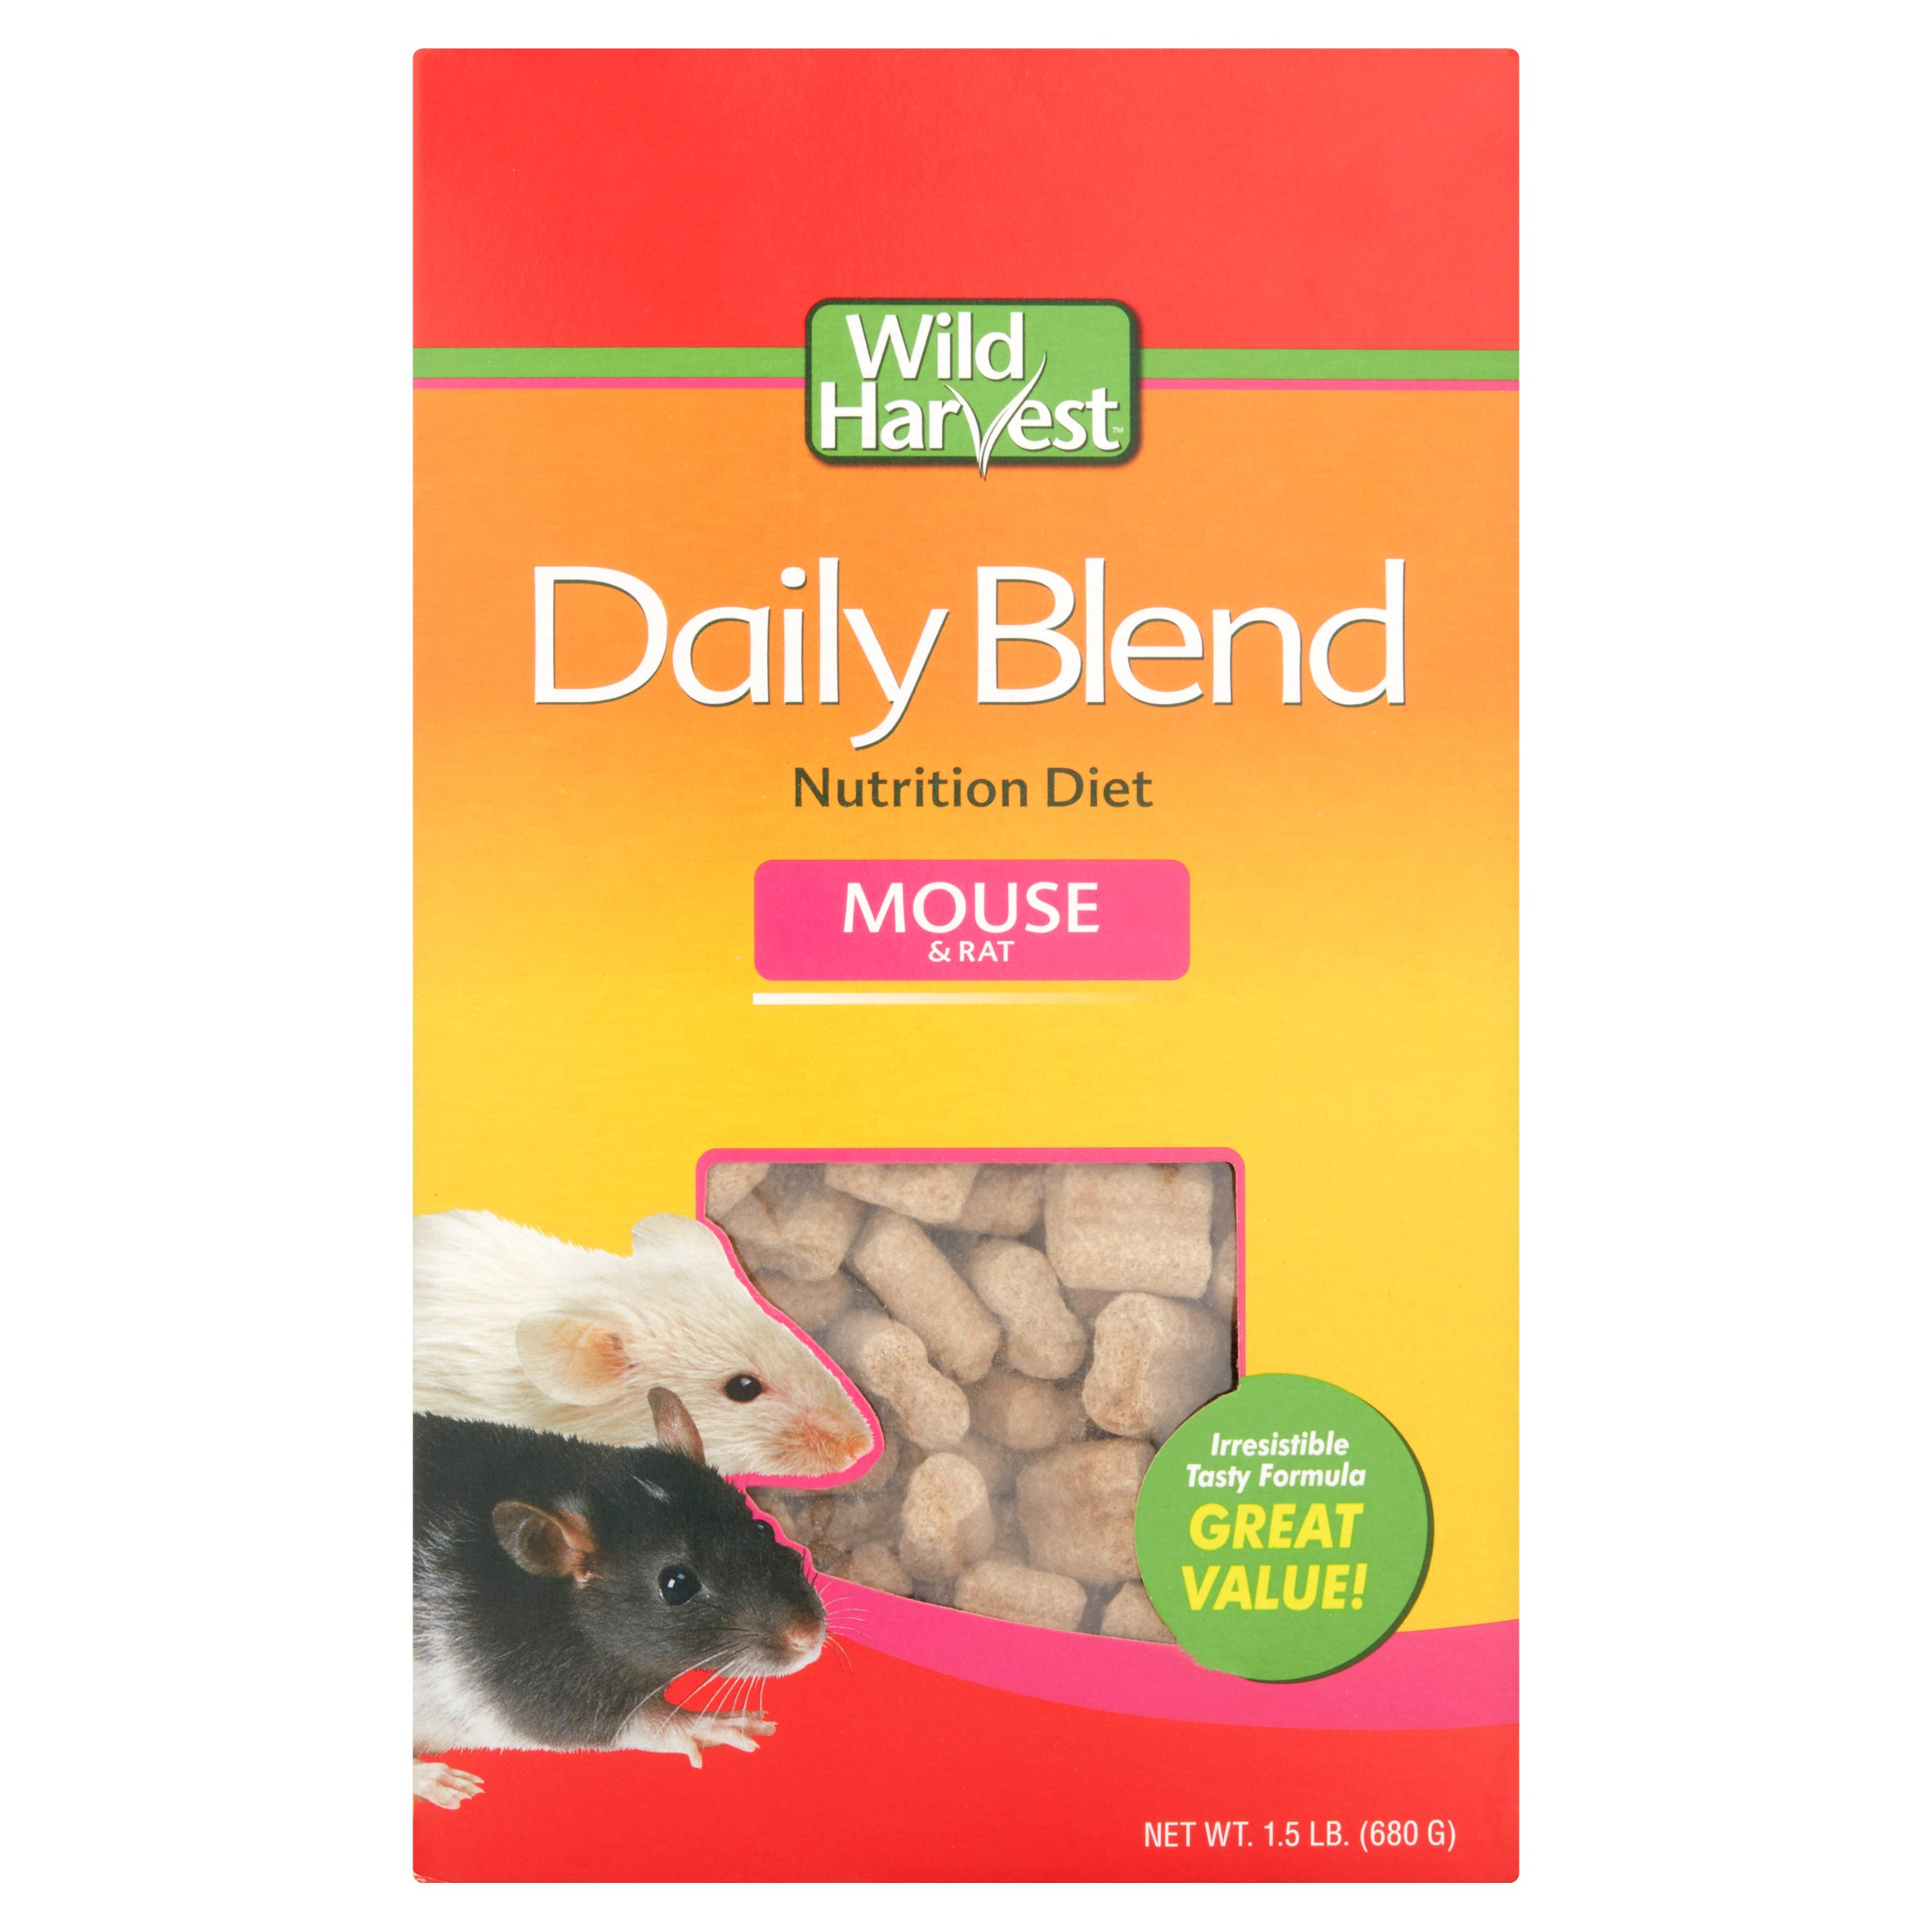 Wild Harvest Mouse and Rat Premium Daily Blend Food, 1.5 lb